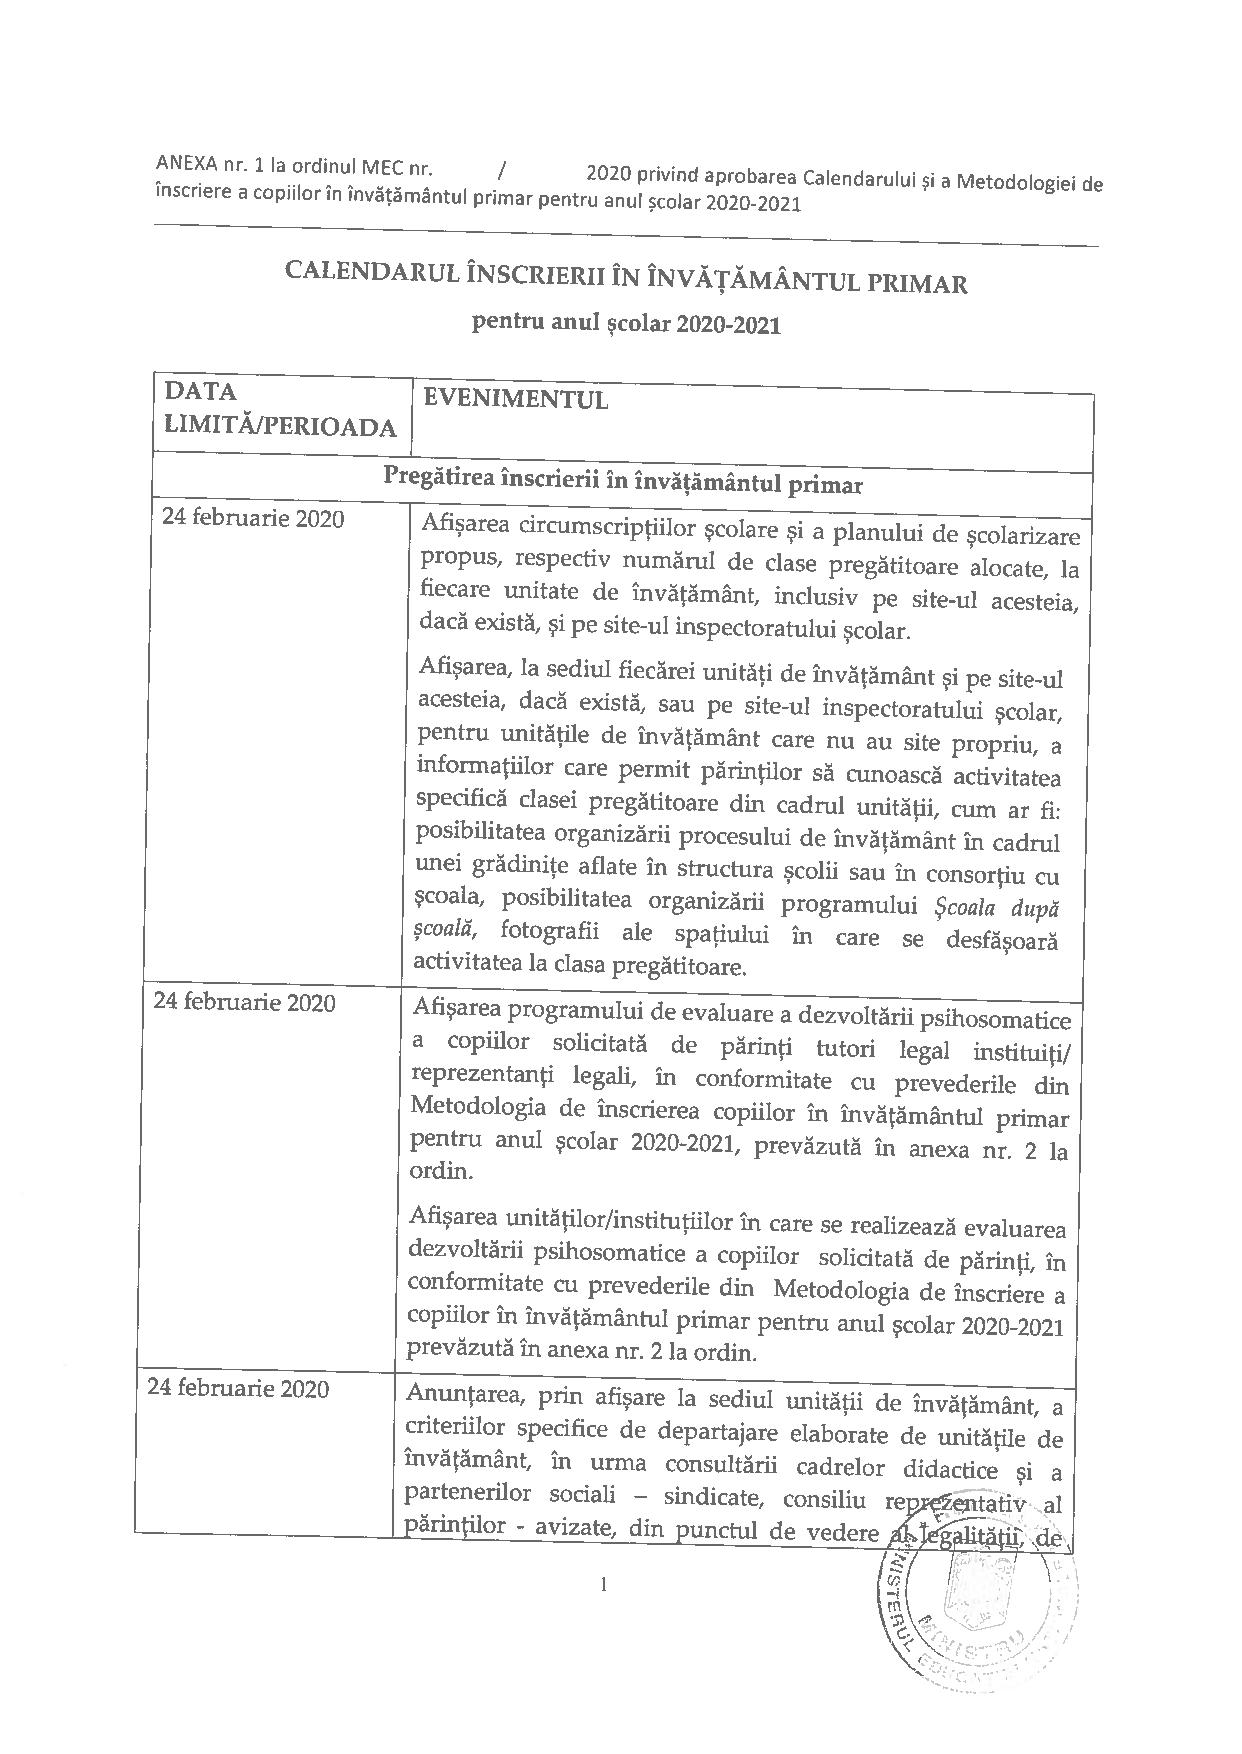 Calendar_inscriere_inv. primar_2020-pages-28-31 (1)-page-001.jpg